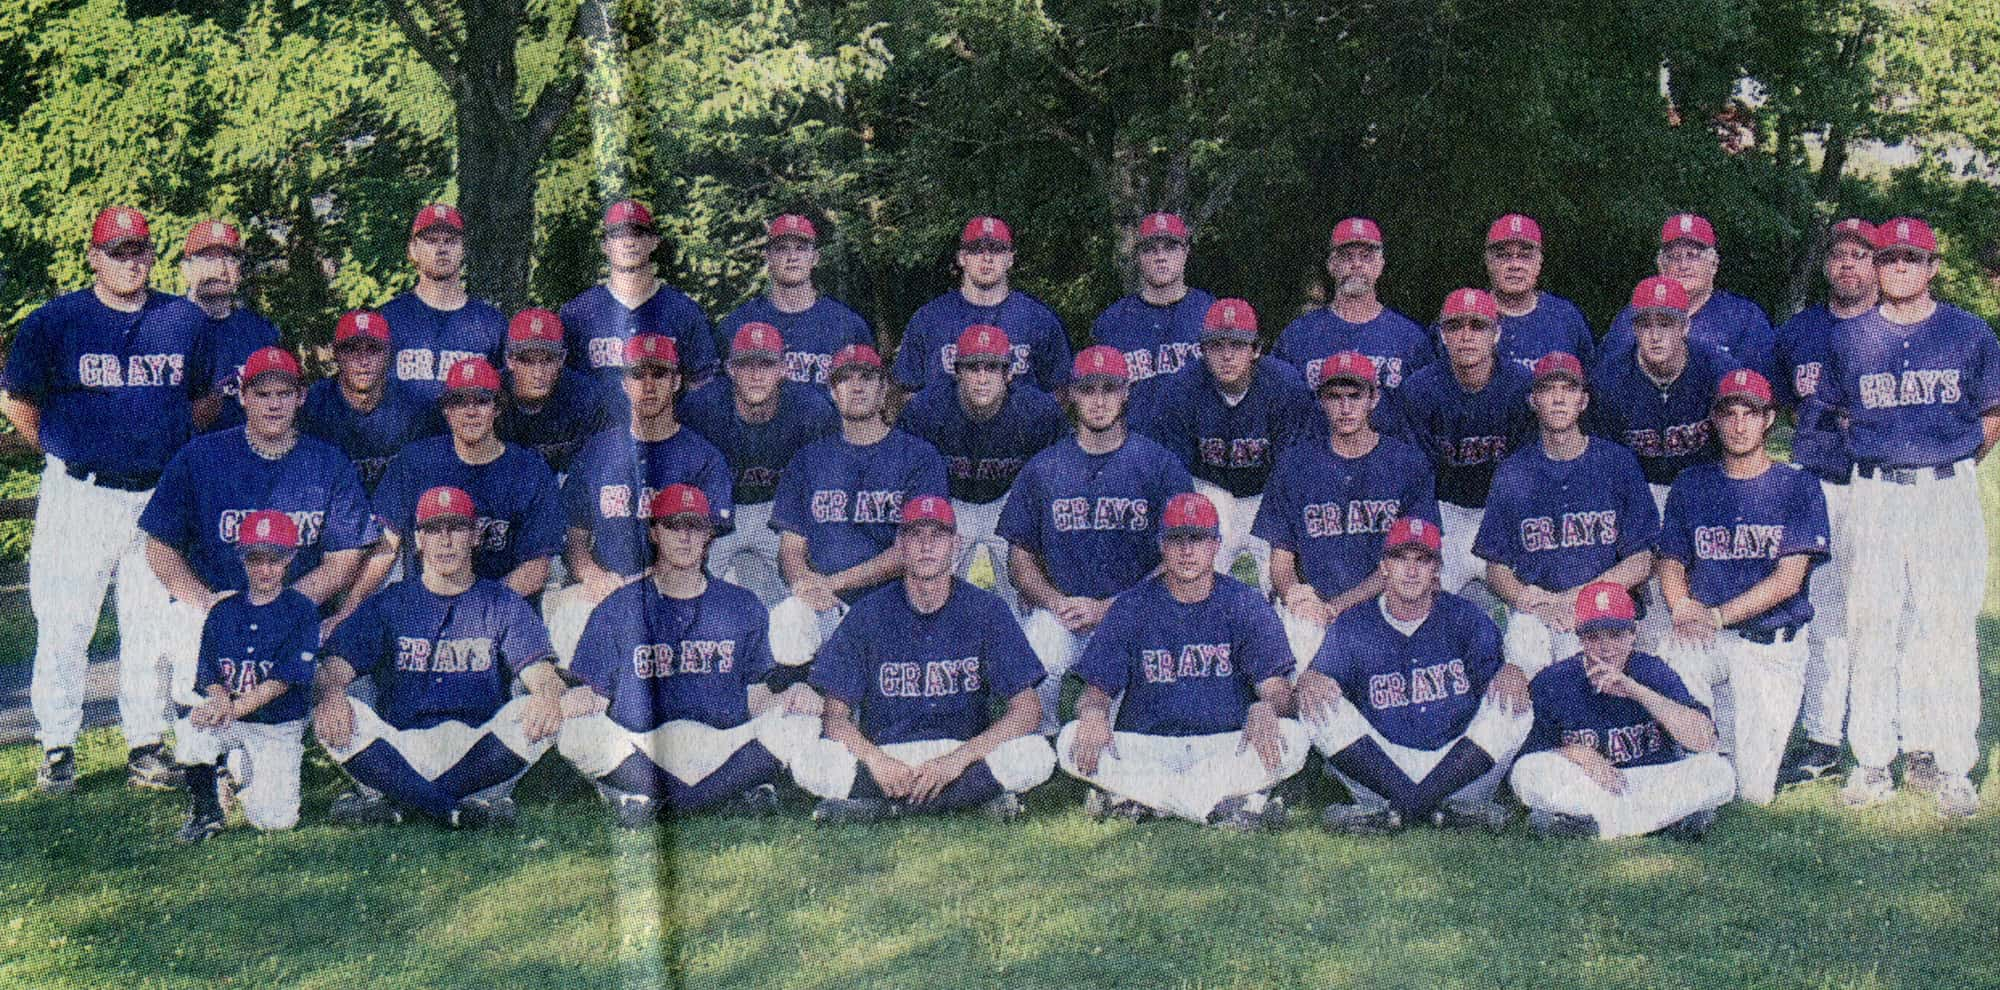 Johnstown Grays 2005 AAABA